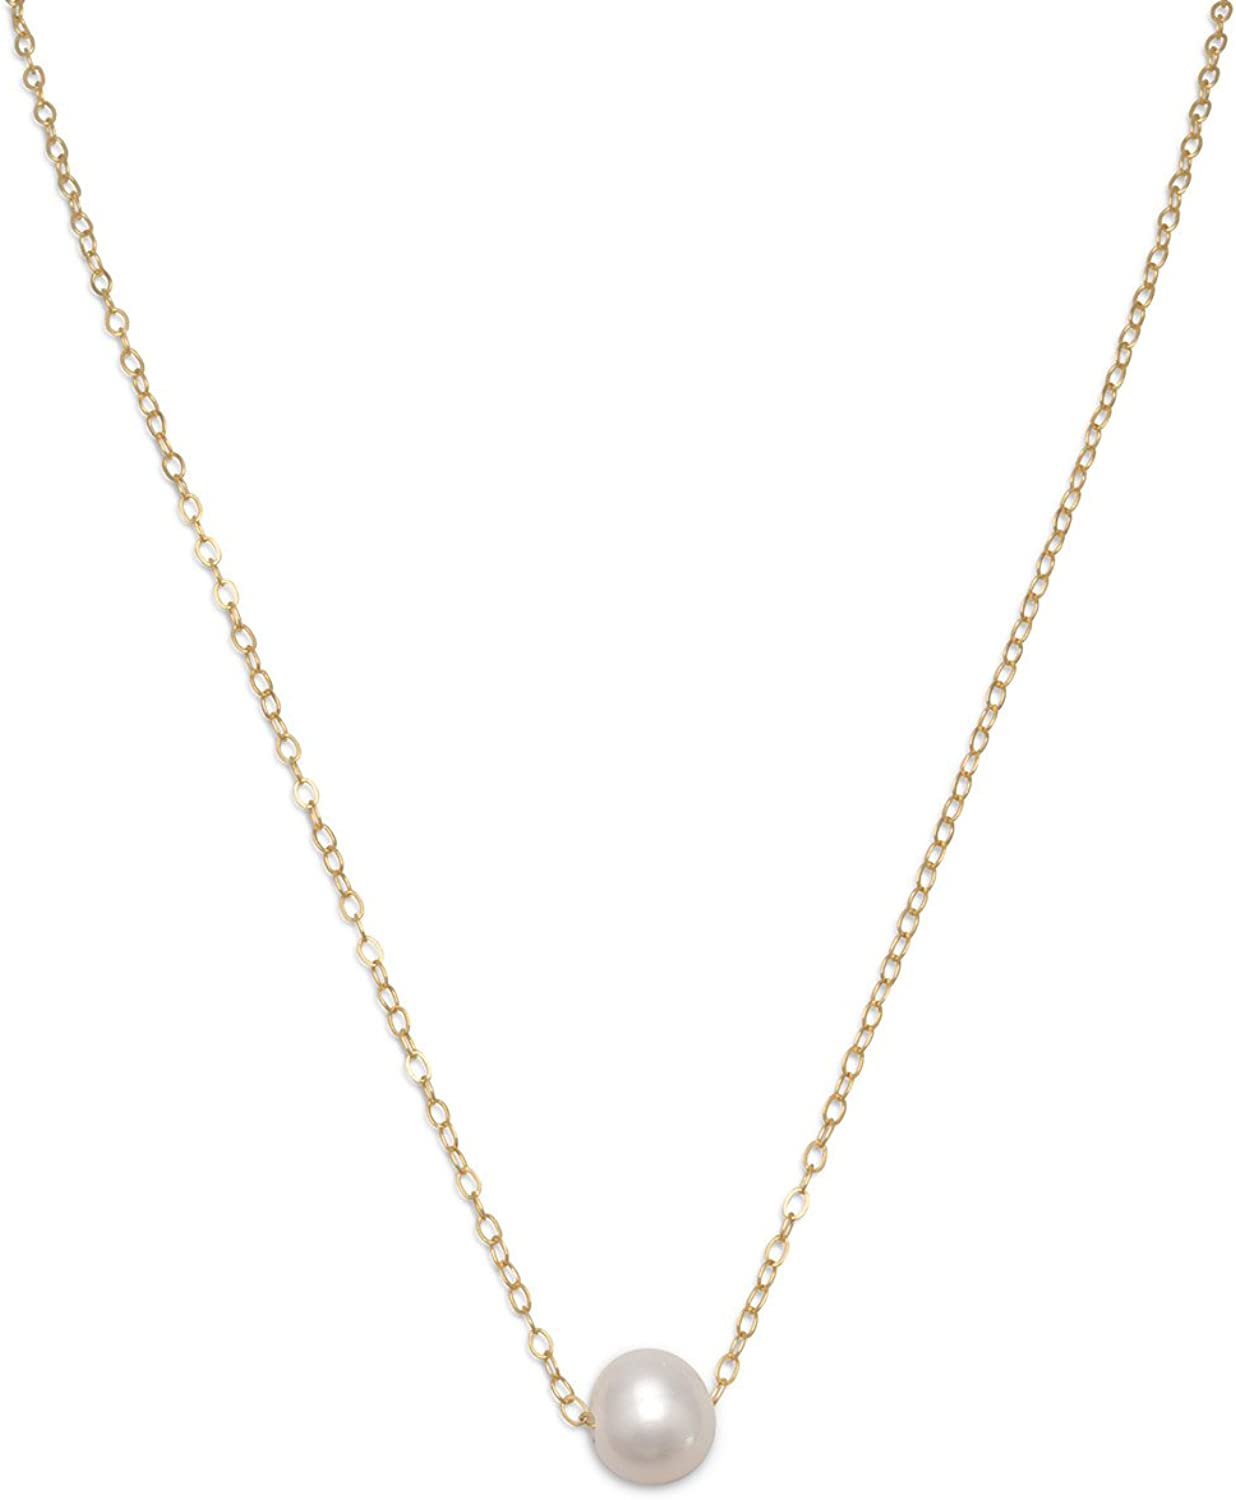 16K Polished Gold Plated over Brass 2pcs  NB0060-PG Freshwater Pearl Pendant Freshwater Pearl Beads Freshwater Pearl Charm